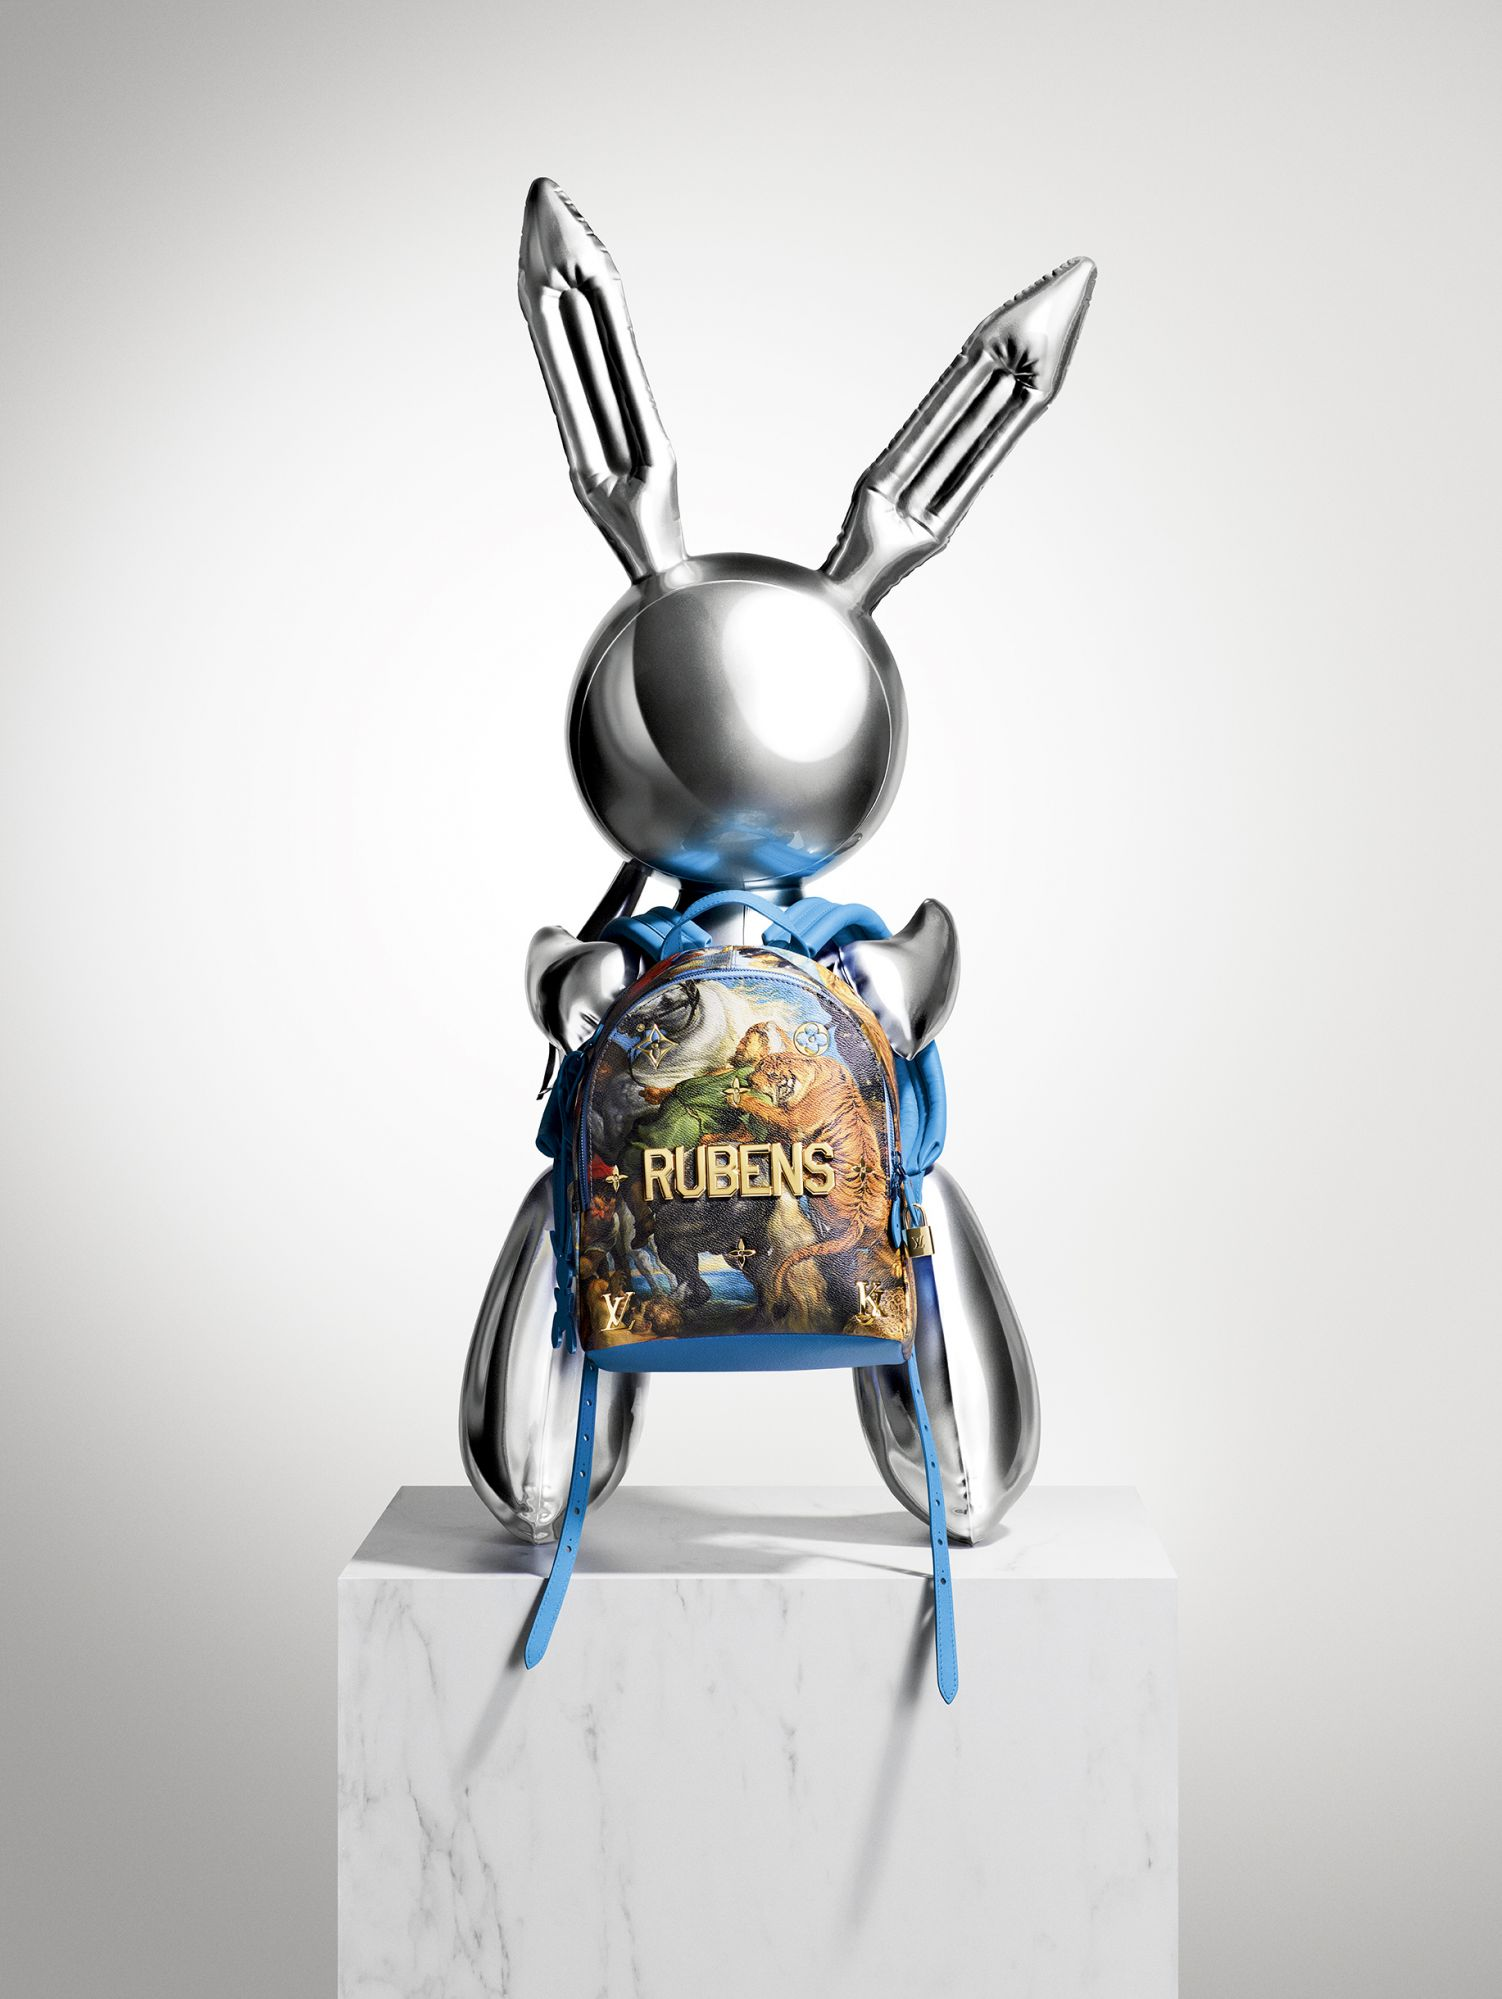 What The Louis Vuitton Collaboration With Jeff Koons Really Looks Like